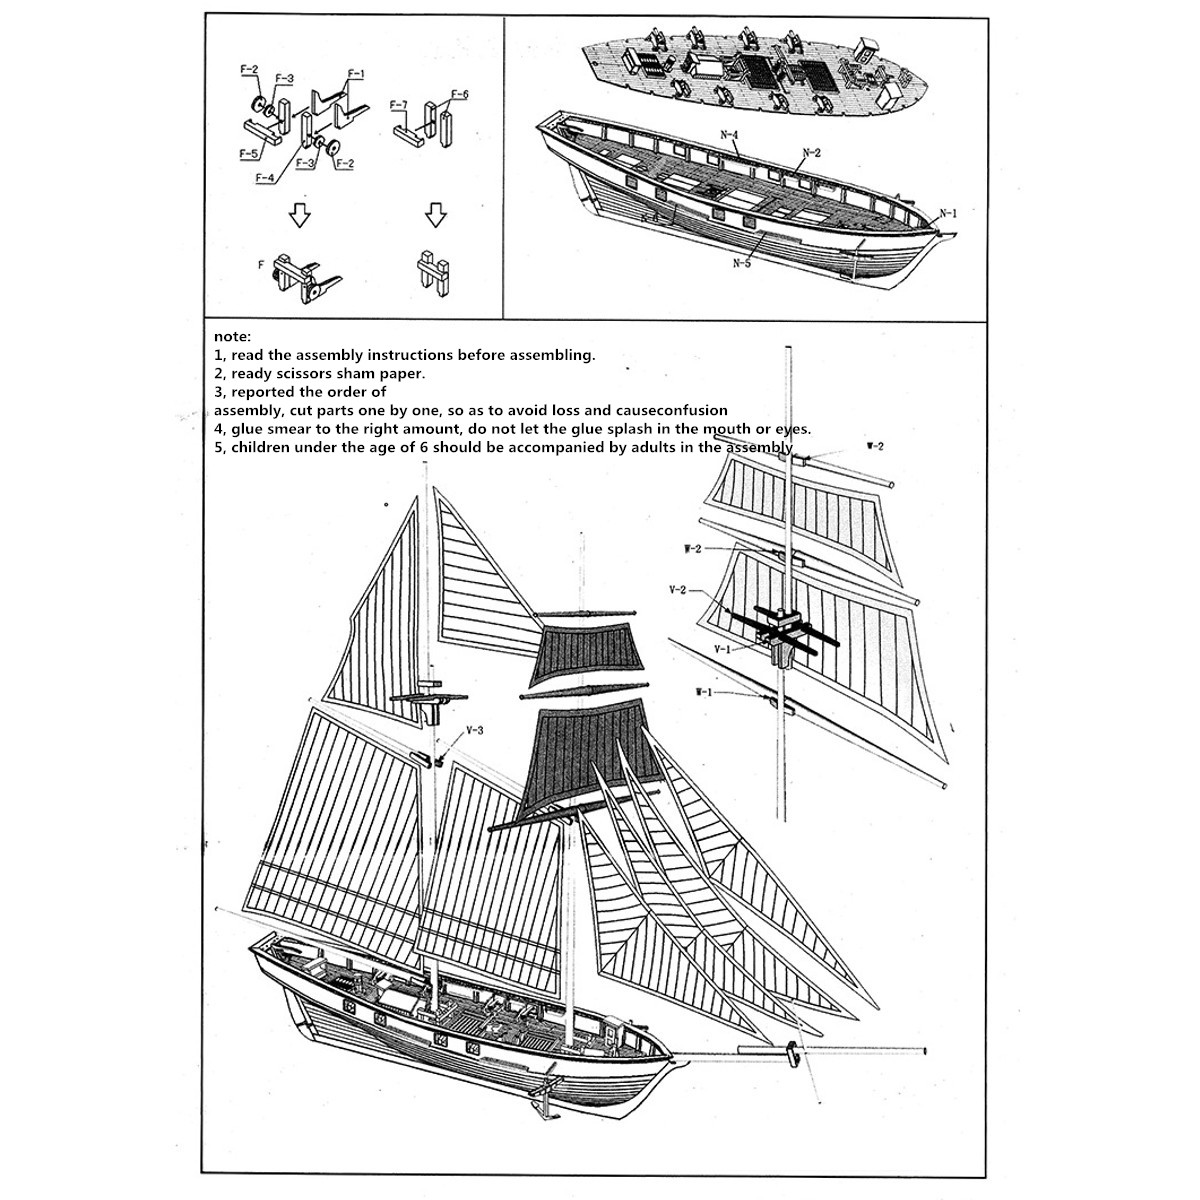 1100 scale wooden wood sailboat ship kits home model decoration detail image pooptronica Choice Image